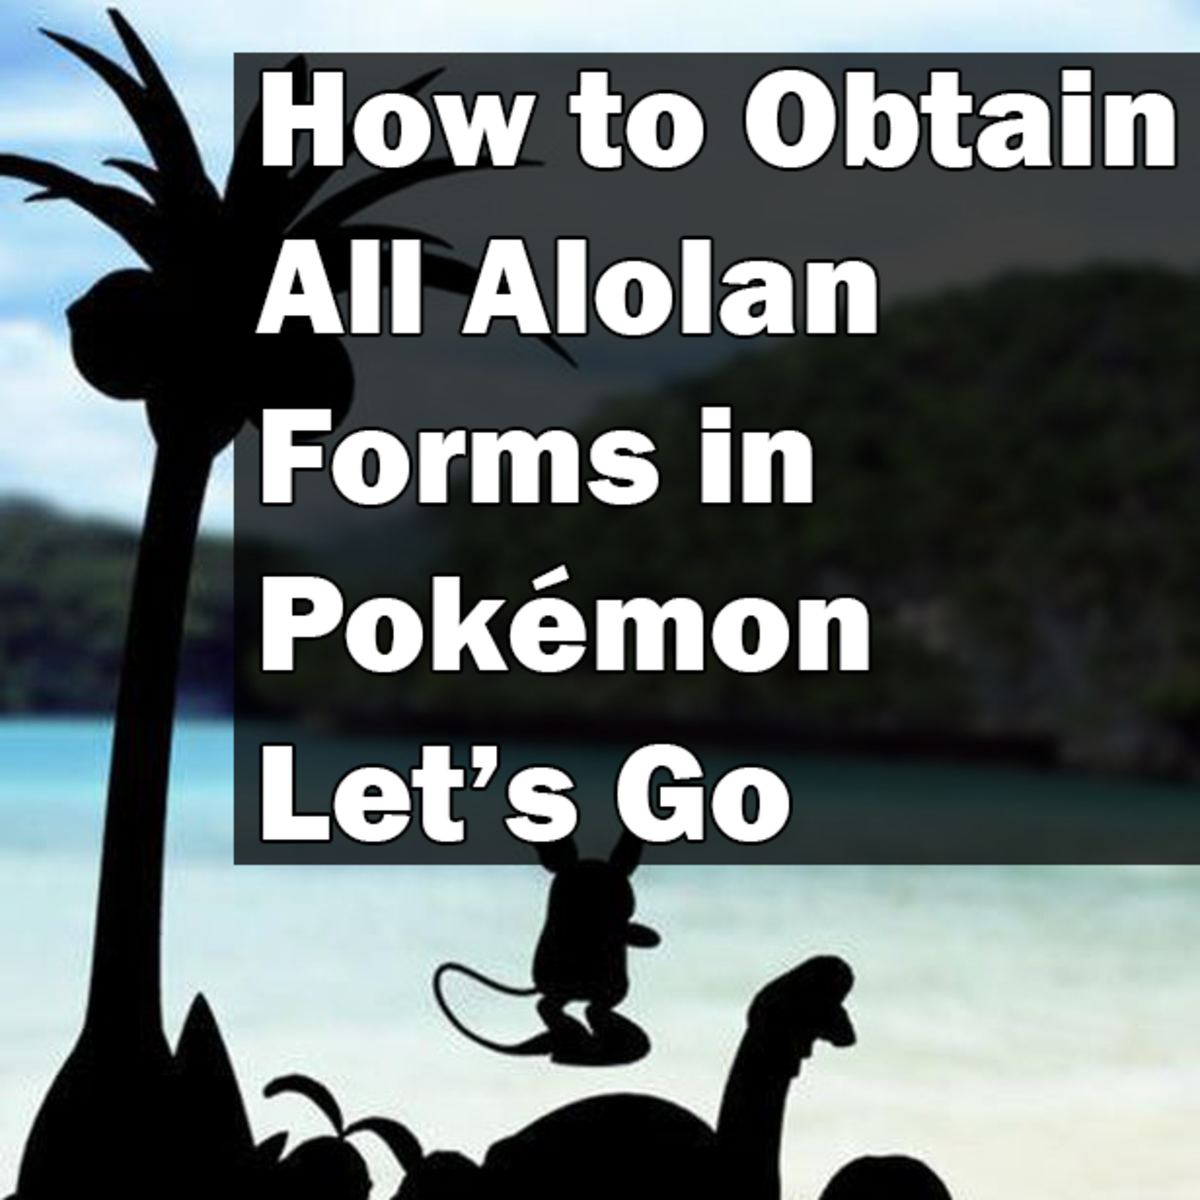 How to Obtain All Alolan Forms in